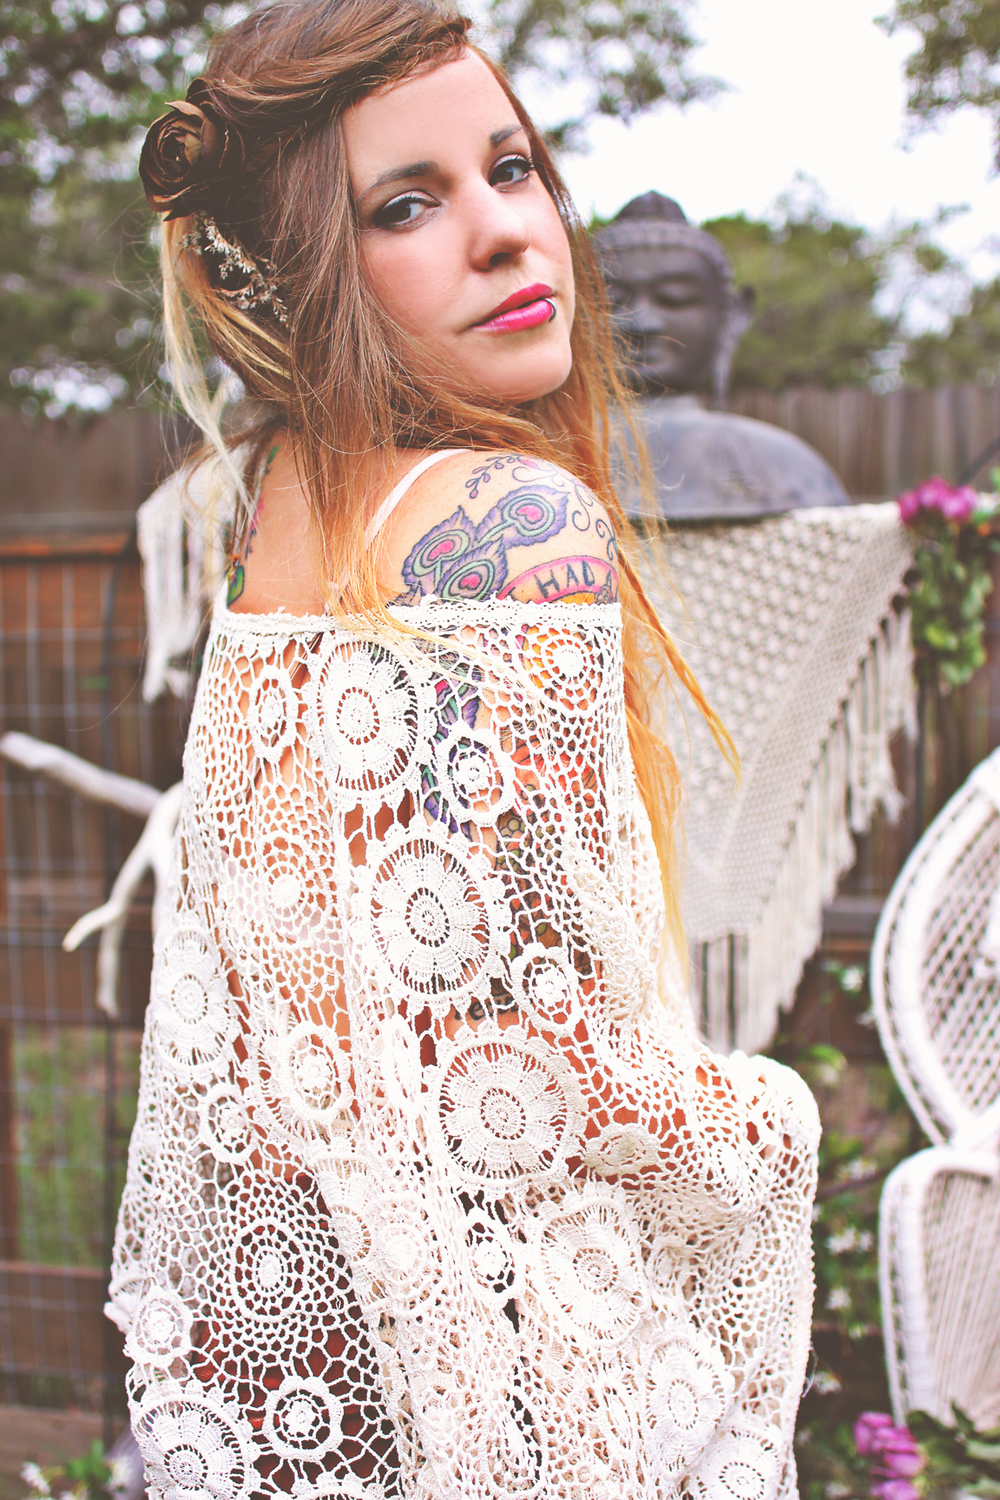 Summer Romance Lookbook via bohocollective.com